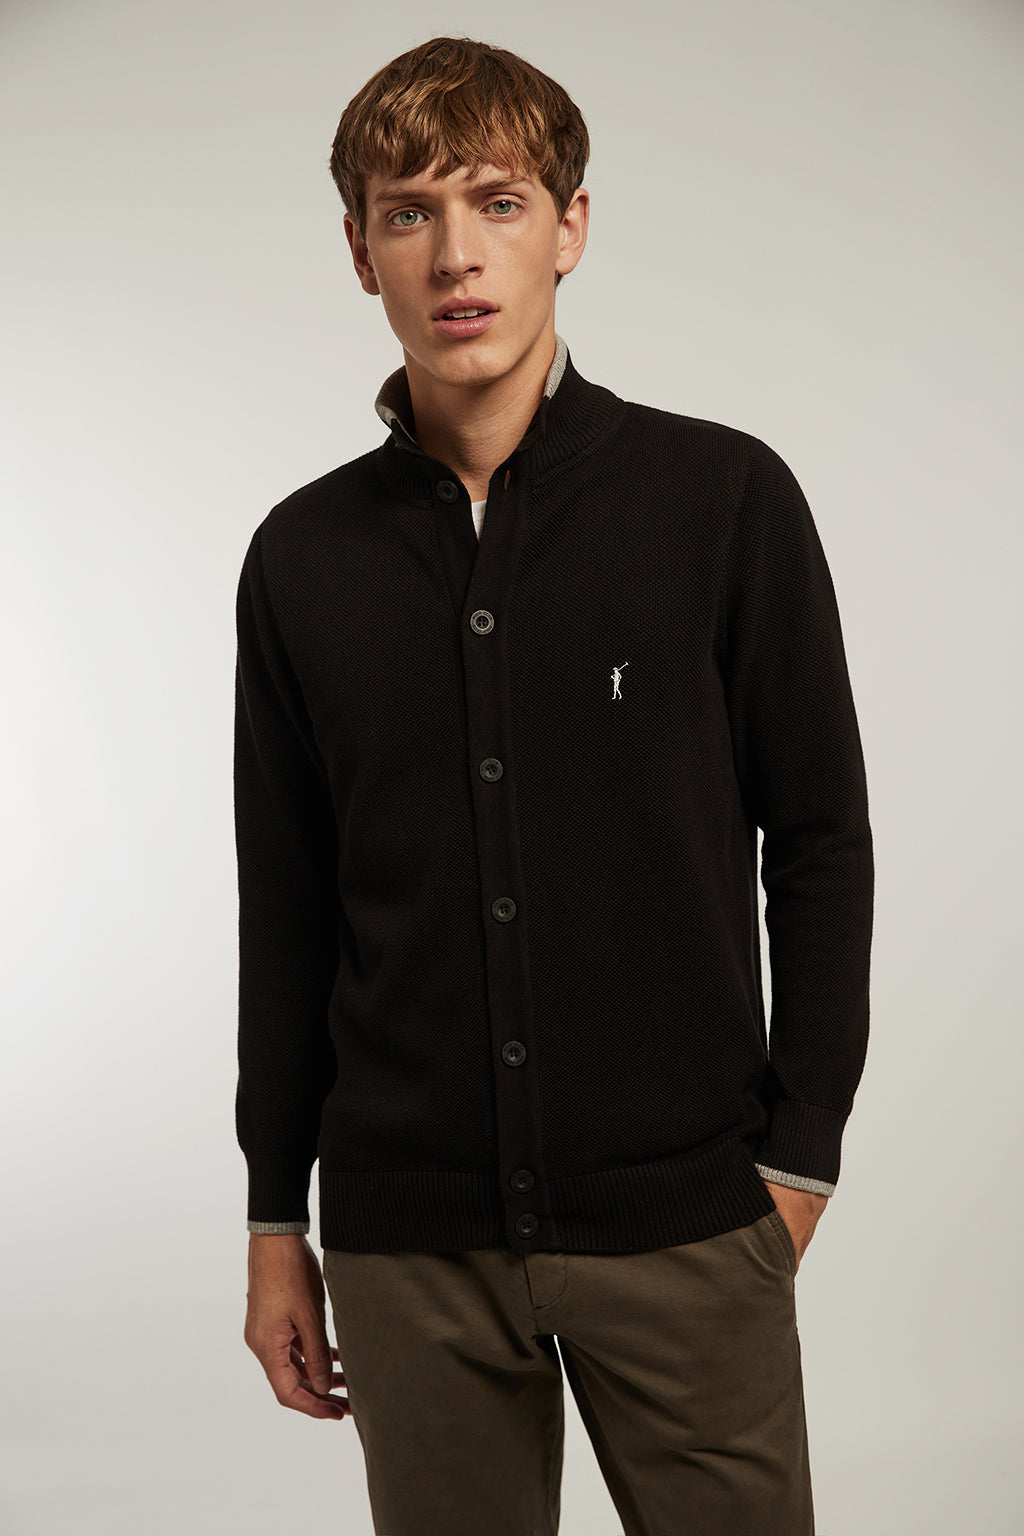 Black cardigan with structure and high collar